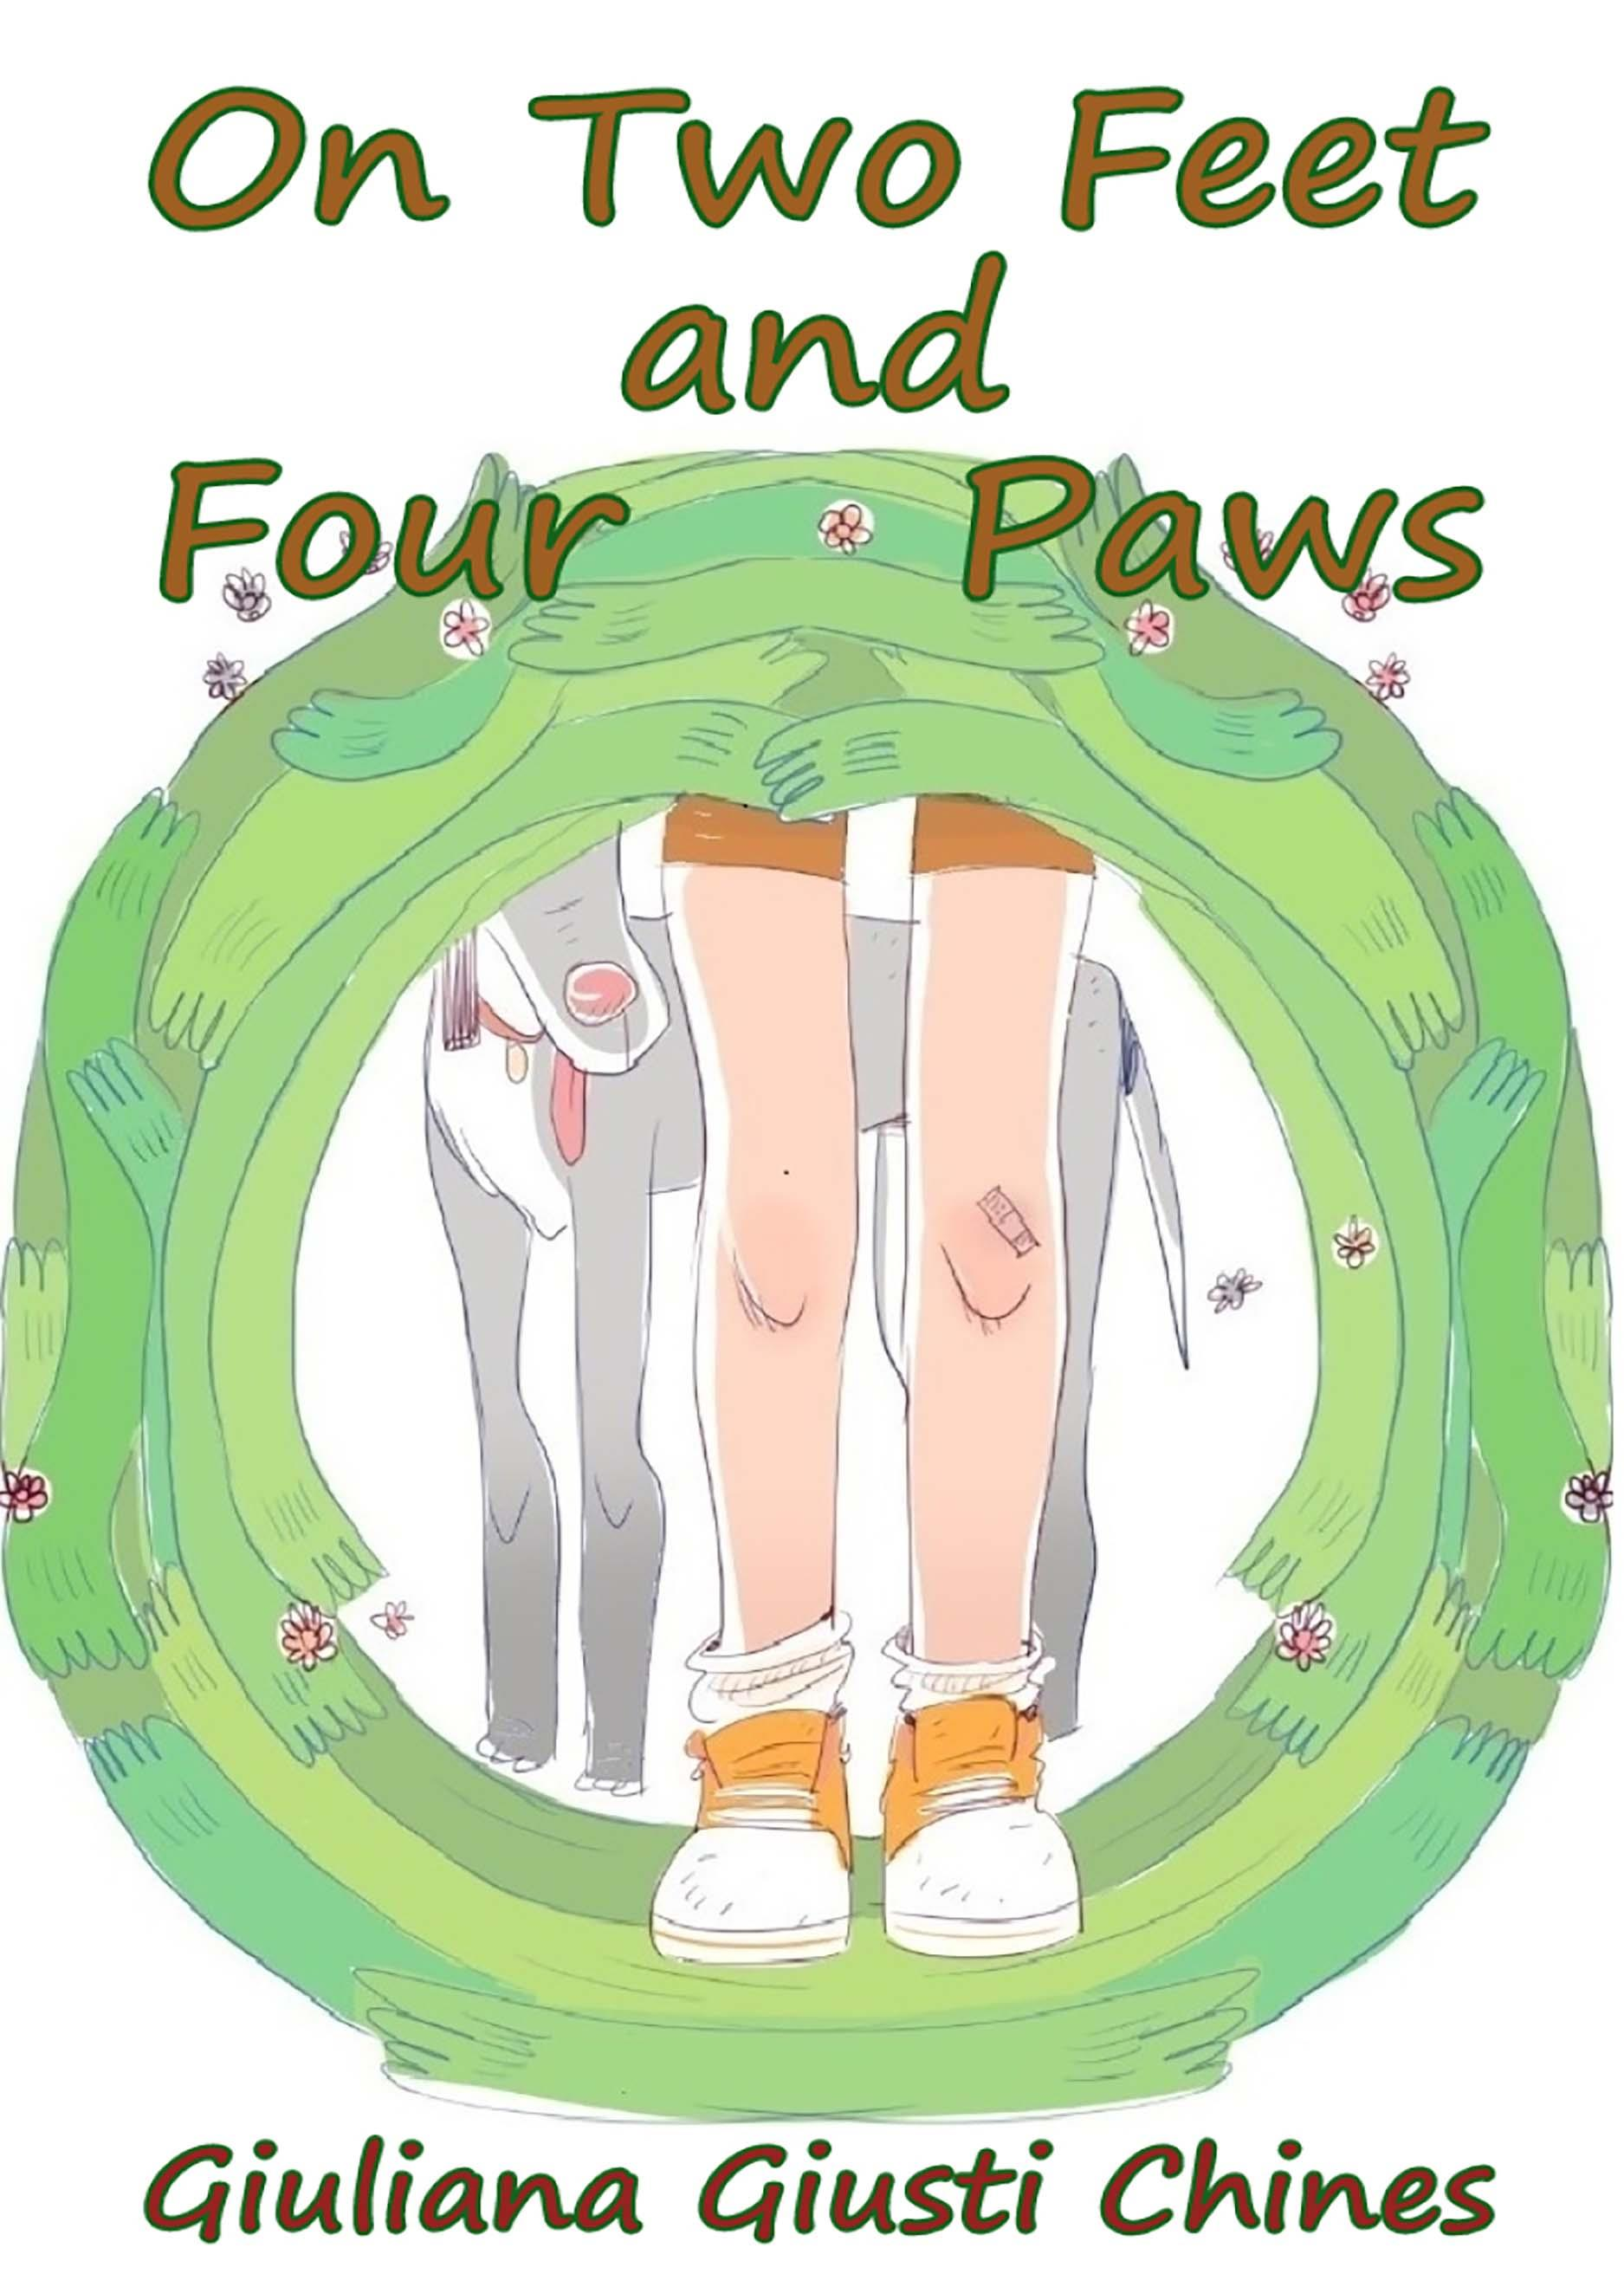 ON TWO FEET AND FOUR PAWS